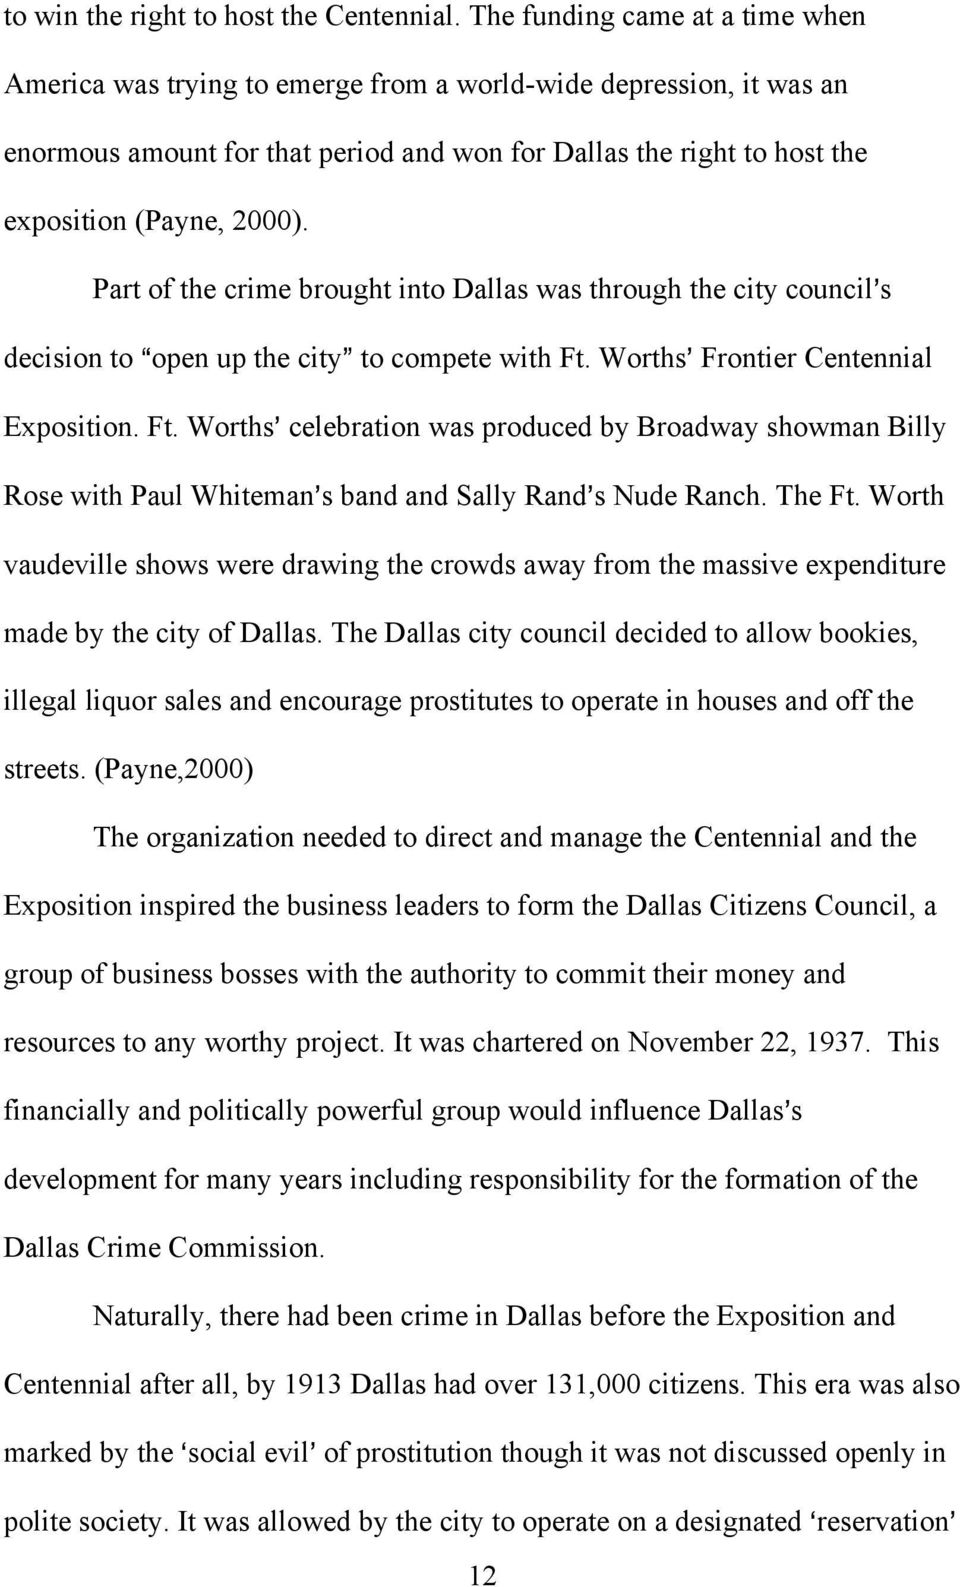 Part of the crime brought into Dallas was through the city council=s decision to Aopen up the city@ to compete with Ft.